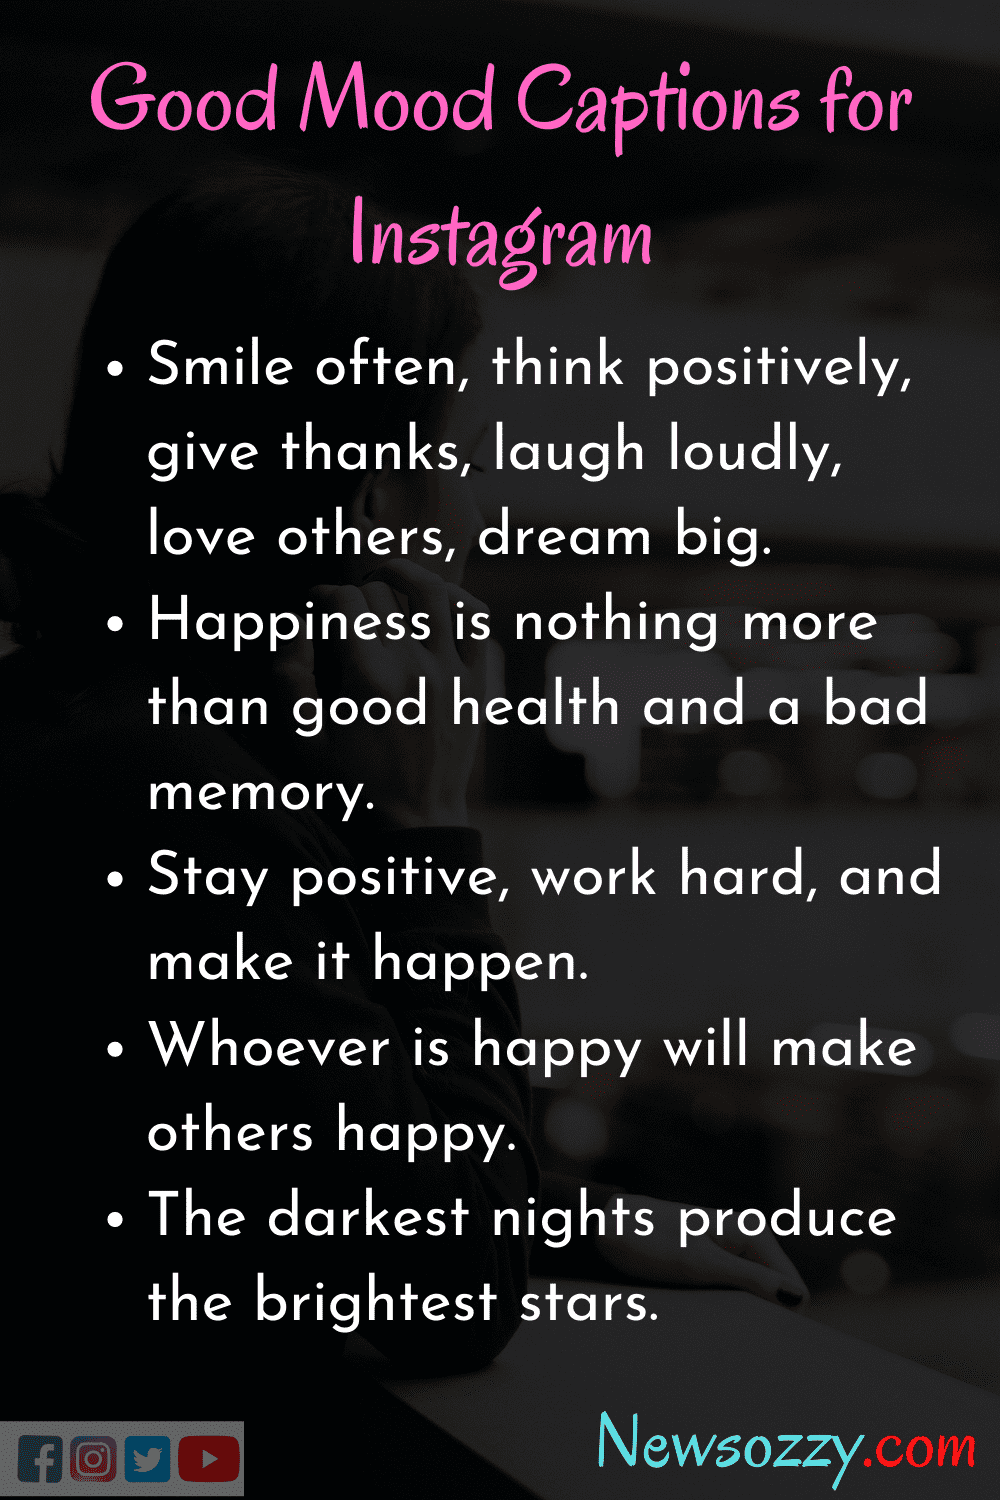 Top 50 Mood Quotes And Captions For Instagram Good Mood Sayings